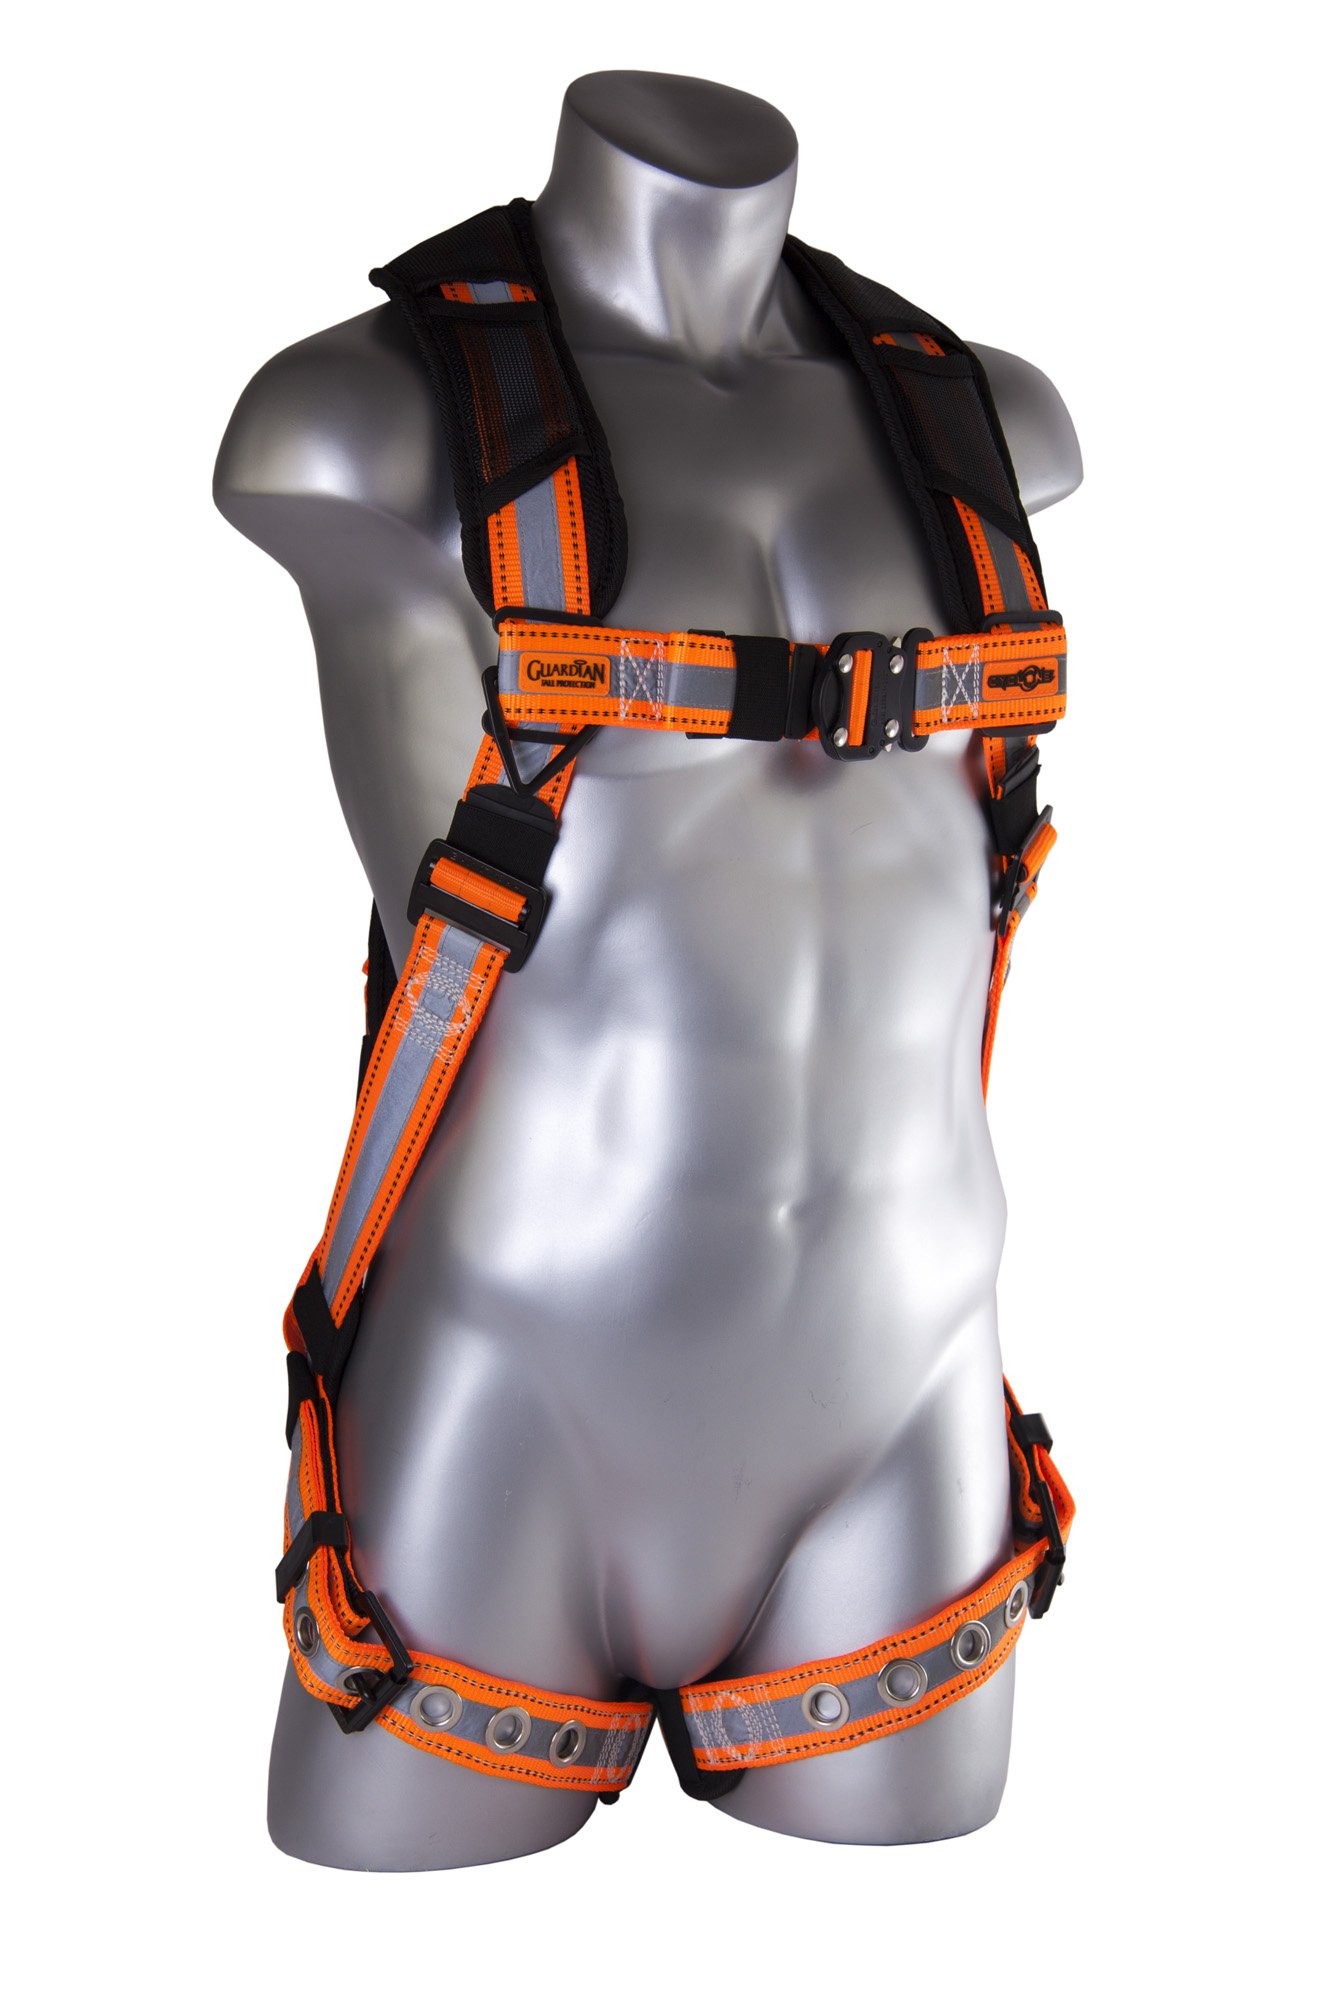 Guardian Fall Protection 21056 Cyclone Harness Black/Orange, sewn-on Silver Reflective Webbing, Quick Connect Chest, Tongue Buckle Legs, Size S